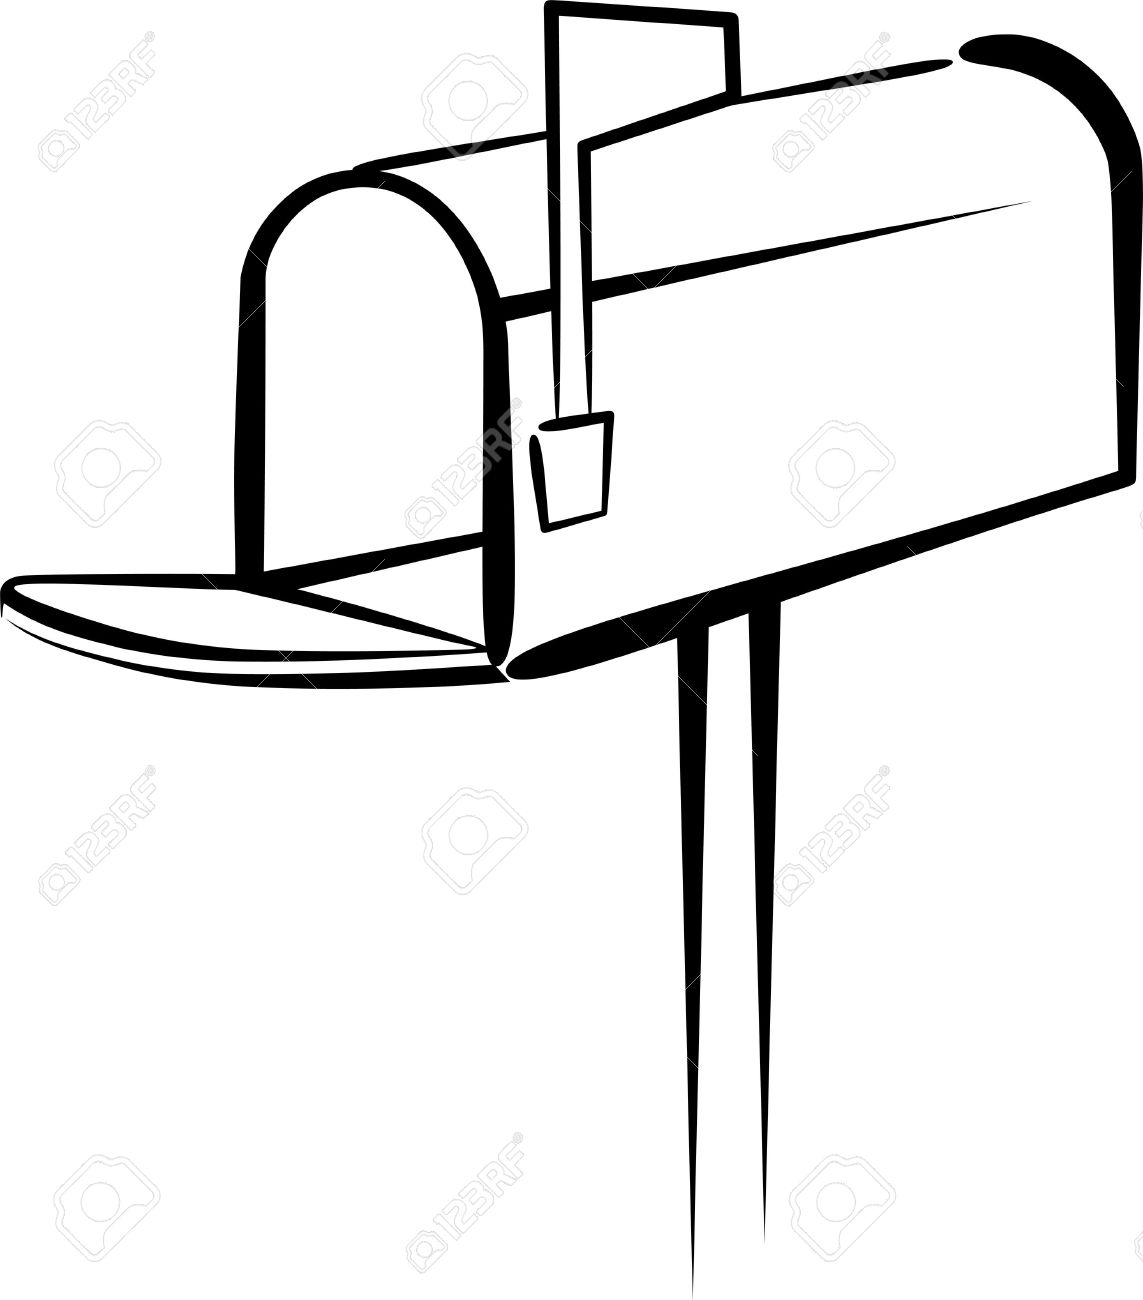 93 With A Mailbox Mailbox Clipart